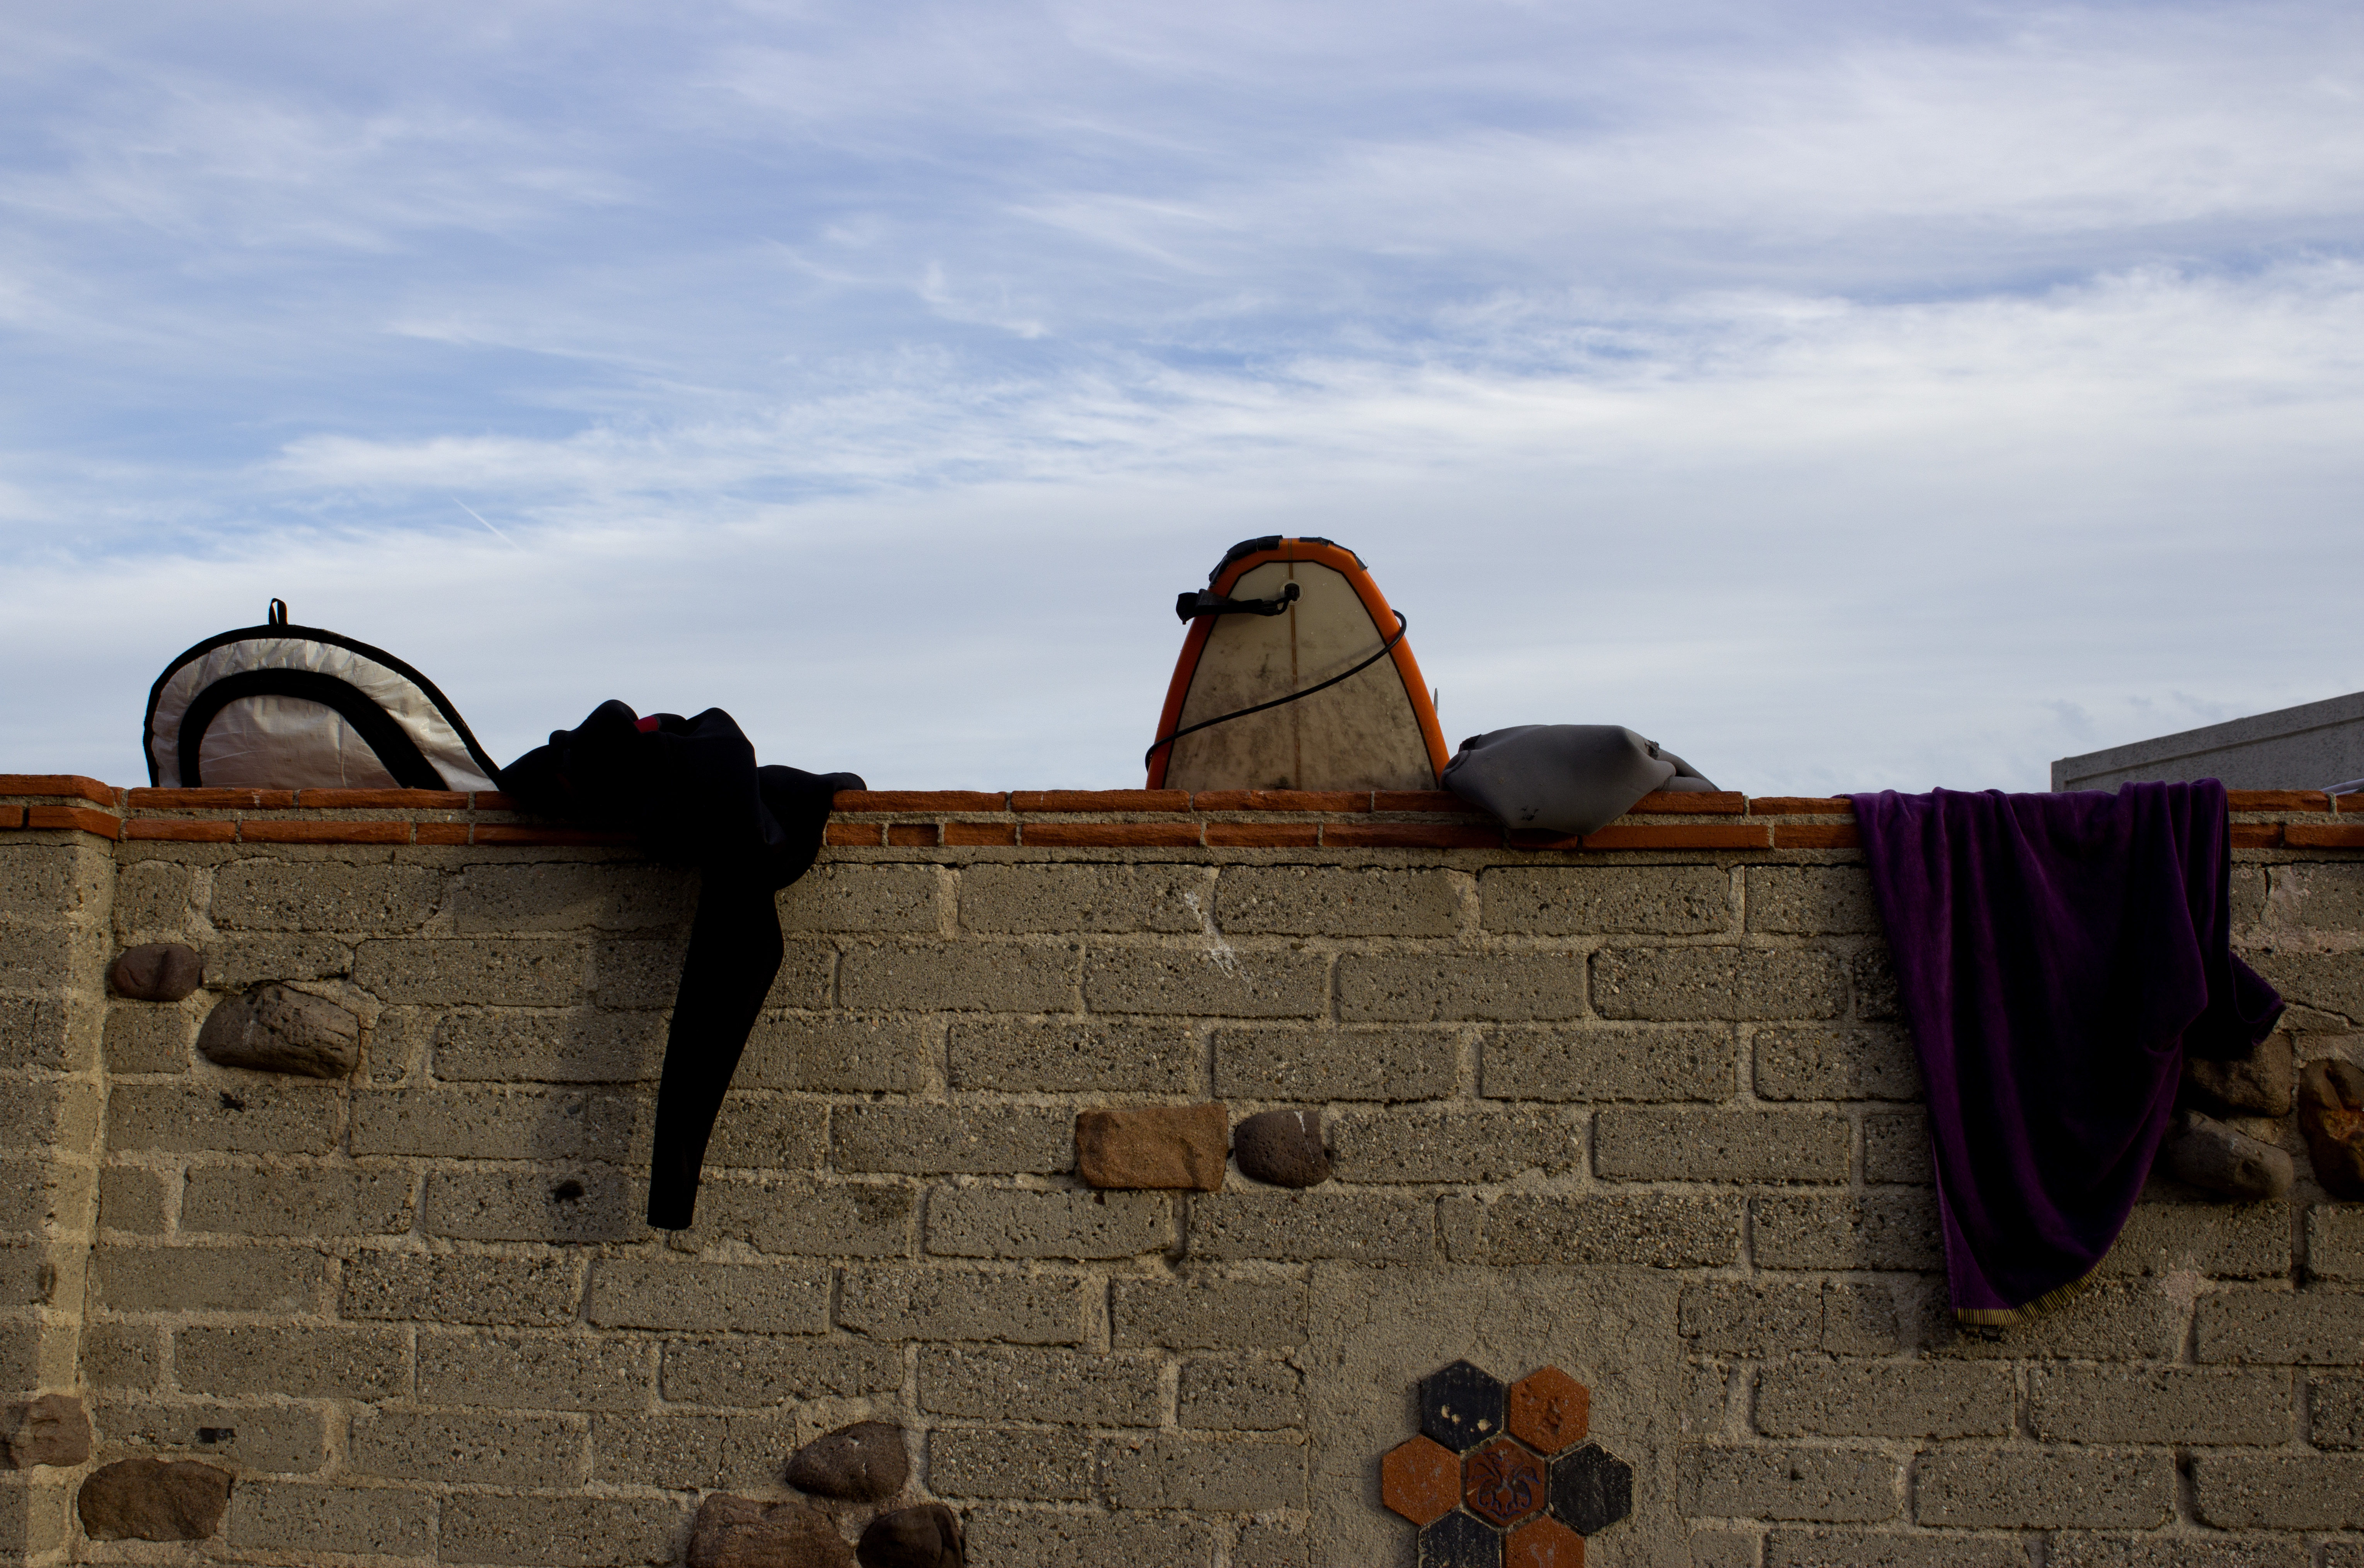 Surfboards on a wall